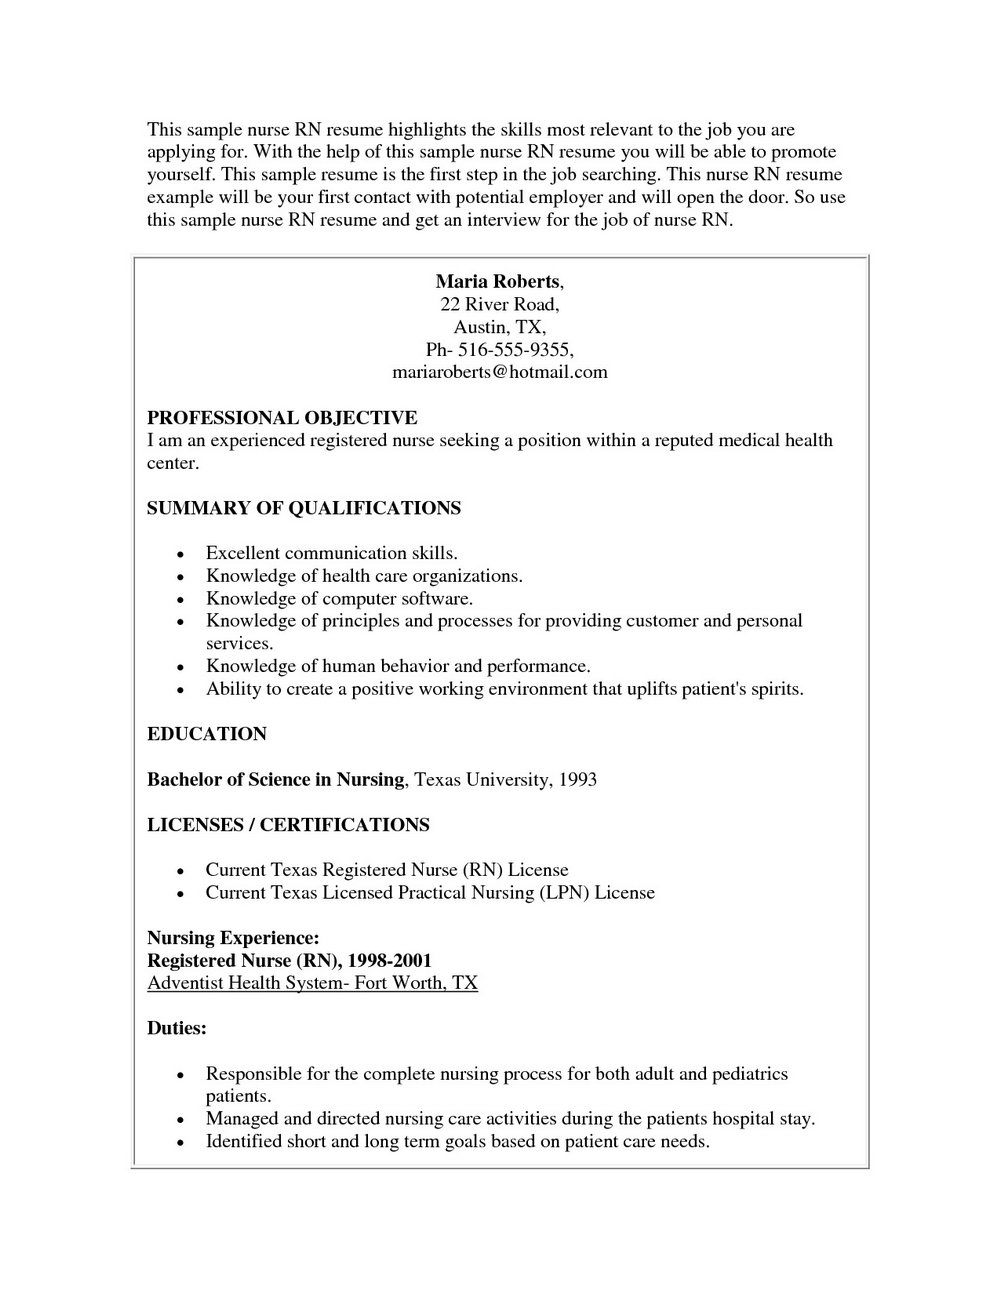 Resume Sample For New Registered Nurse